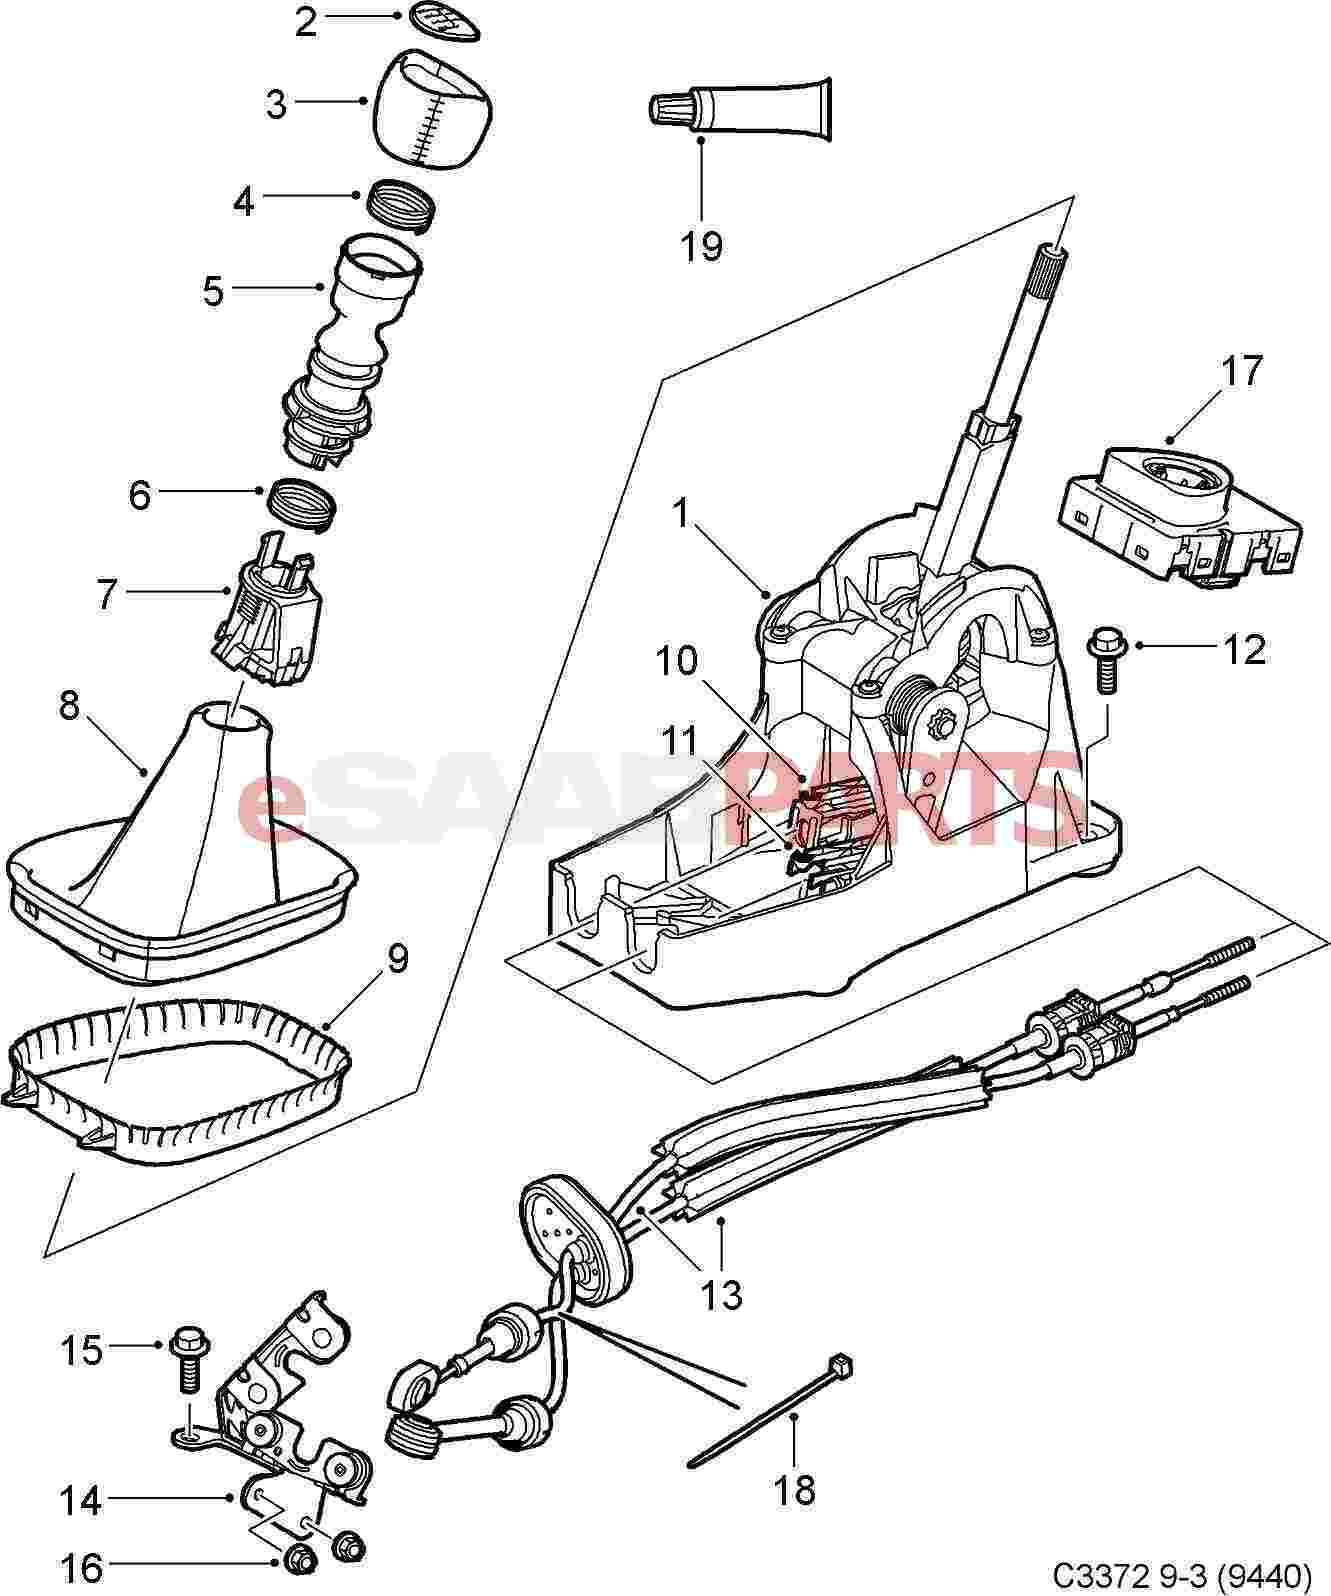 Saab 900s Parts Diagram Shifter Automatic on 1992 mitsubishi 3000gt wiring diagram